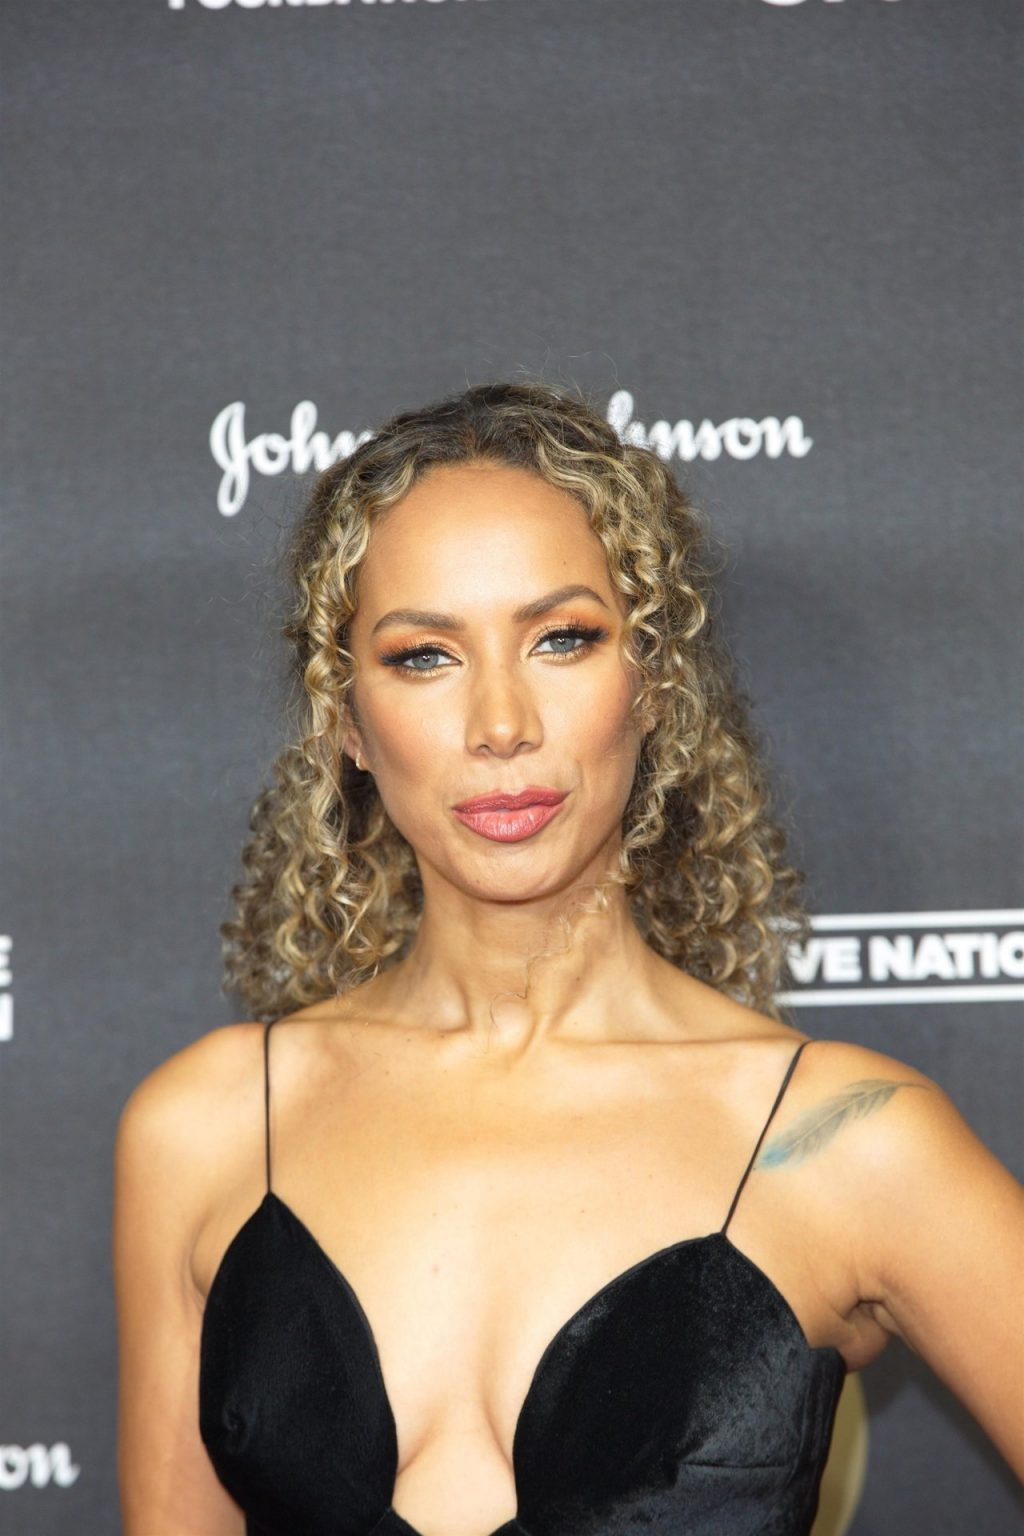 Leona Lewis Sexy (73 Photos)